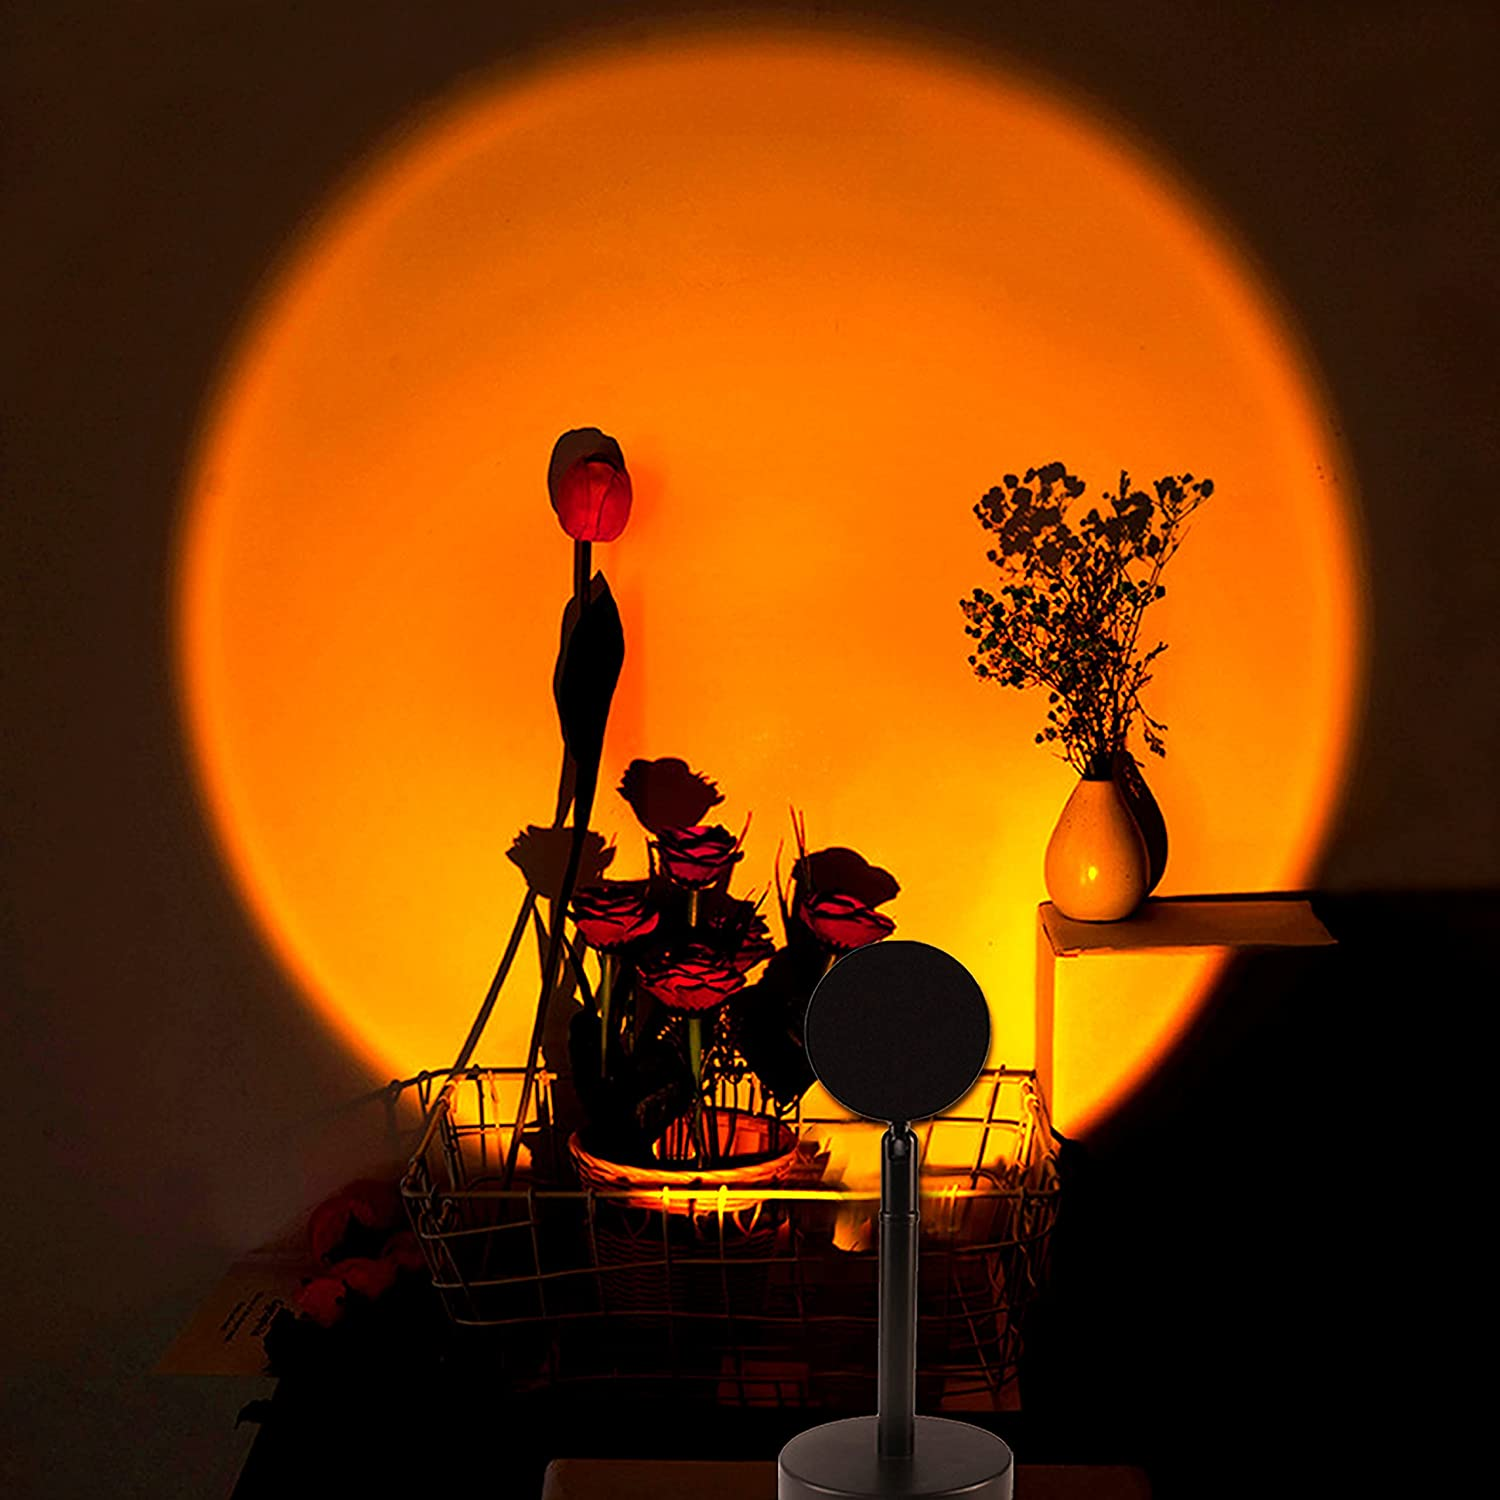 Sunset Lamp,Sunset Projection Lamp,Romantic Visual Sunset Light ,180 Degree Rotation Projection Led Sunset Lamp Projector USB Charging for Room Bedroom Studio Decor